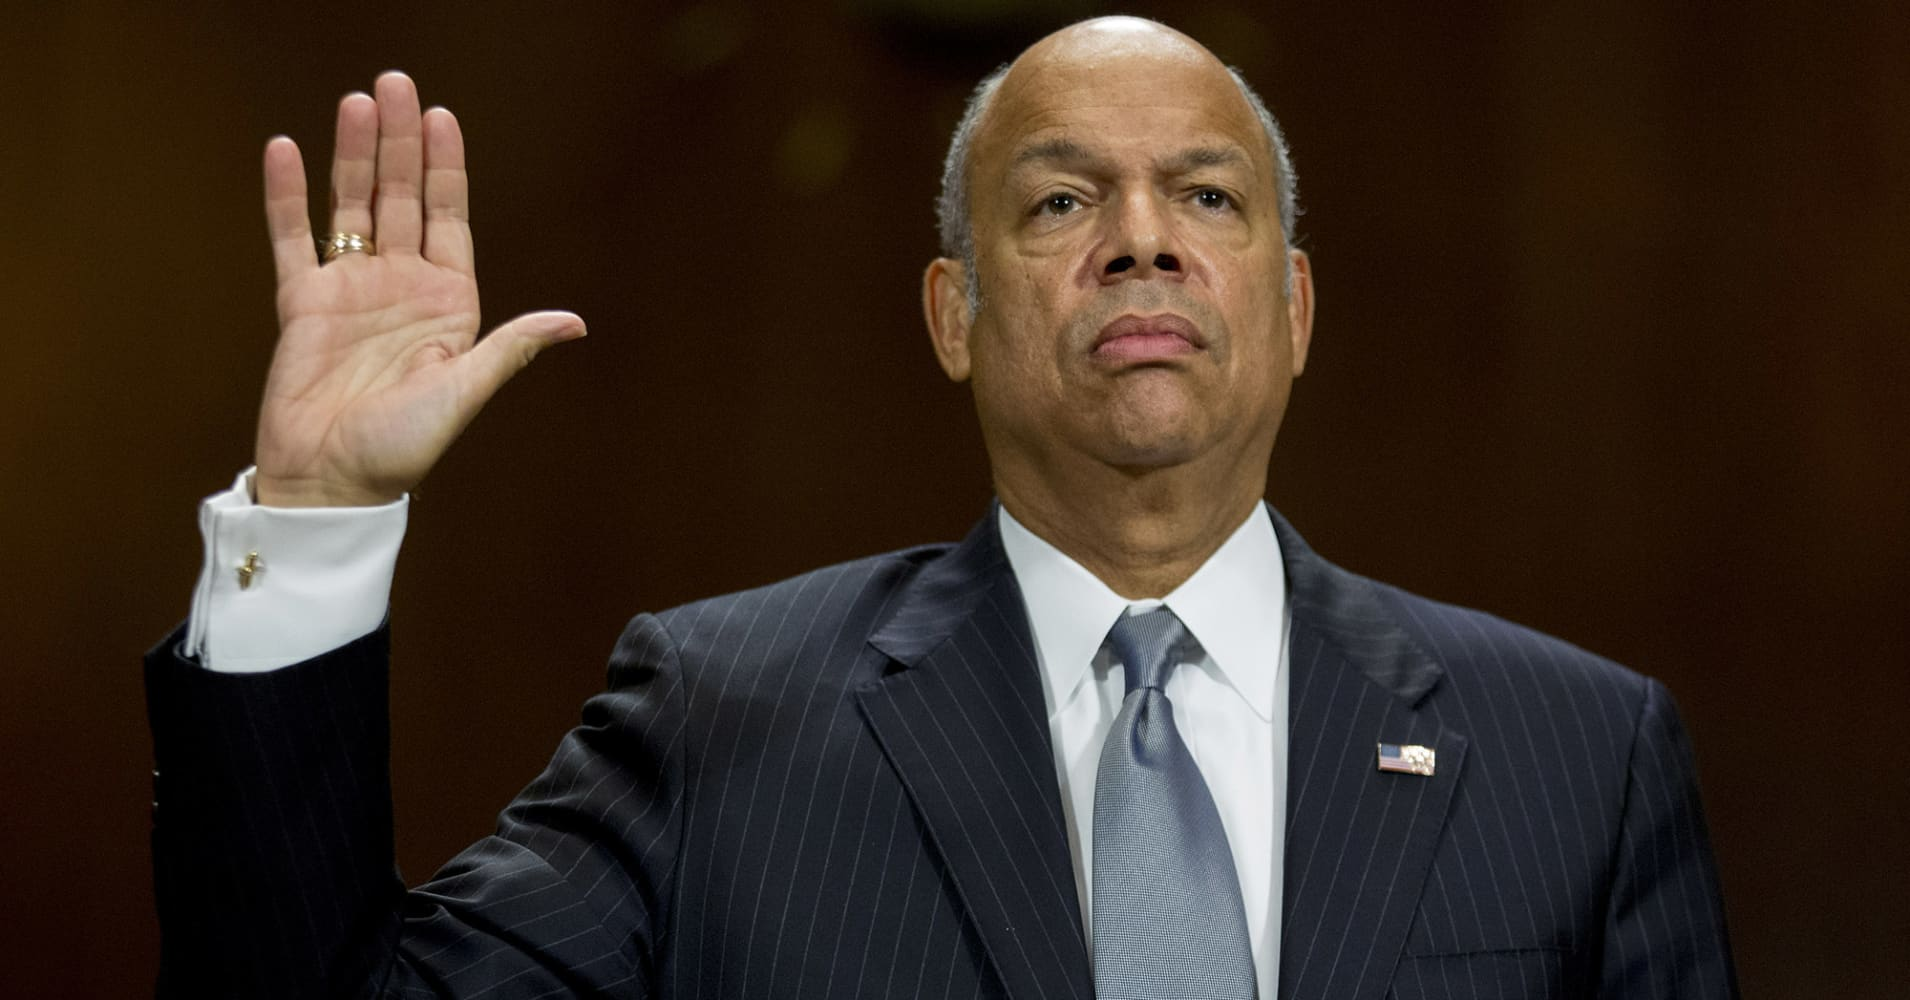 Watch: Former DHS chief Jeh Johnson testifies on Russian interference, election security